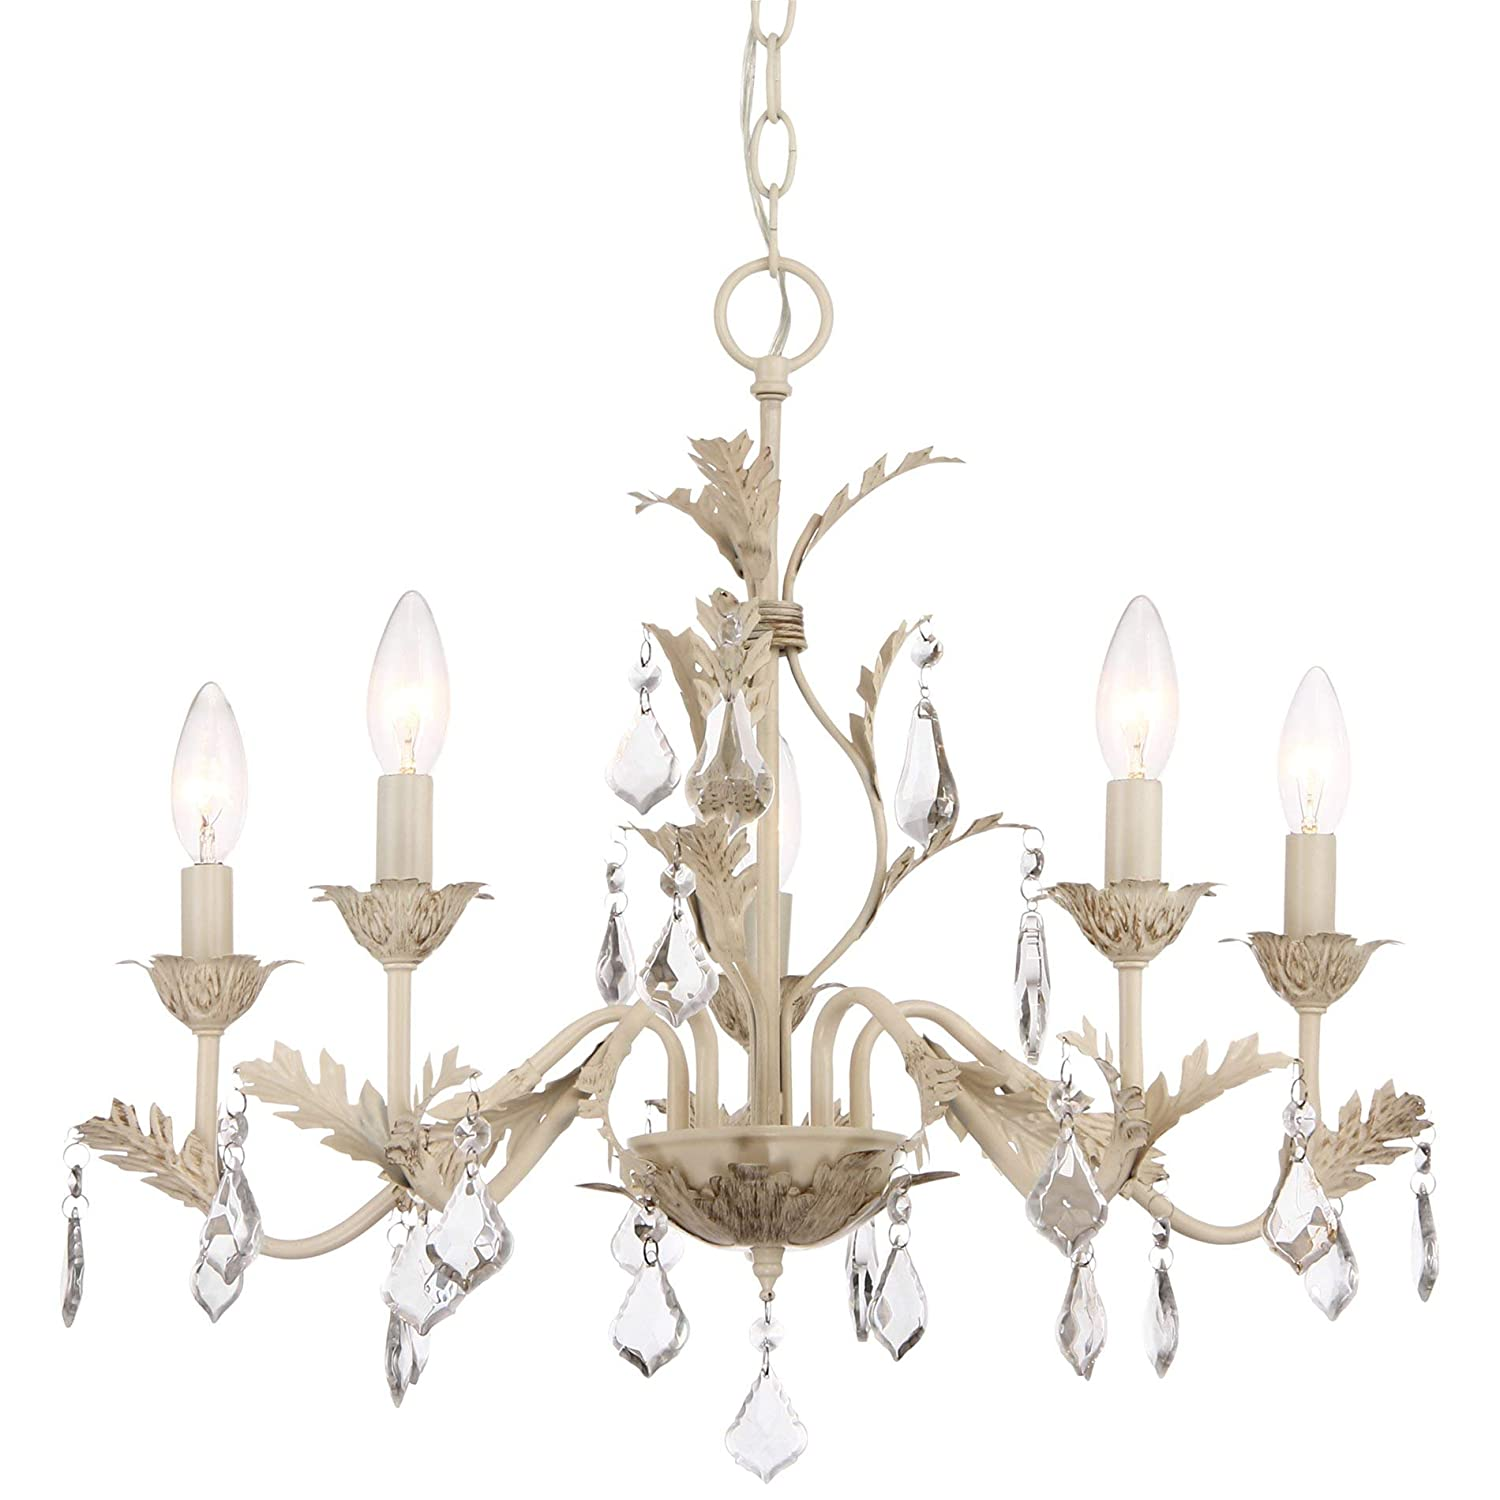 Distressed white French country chandelier.